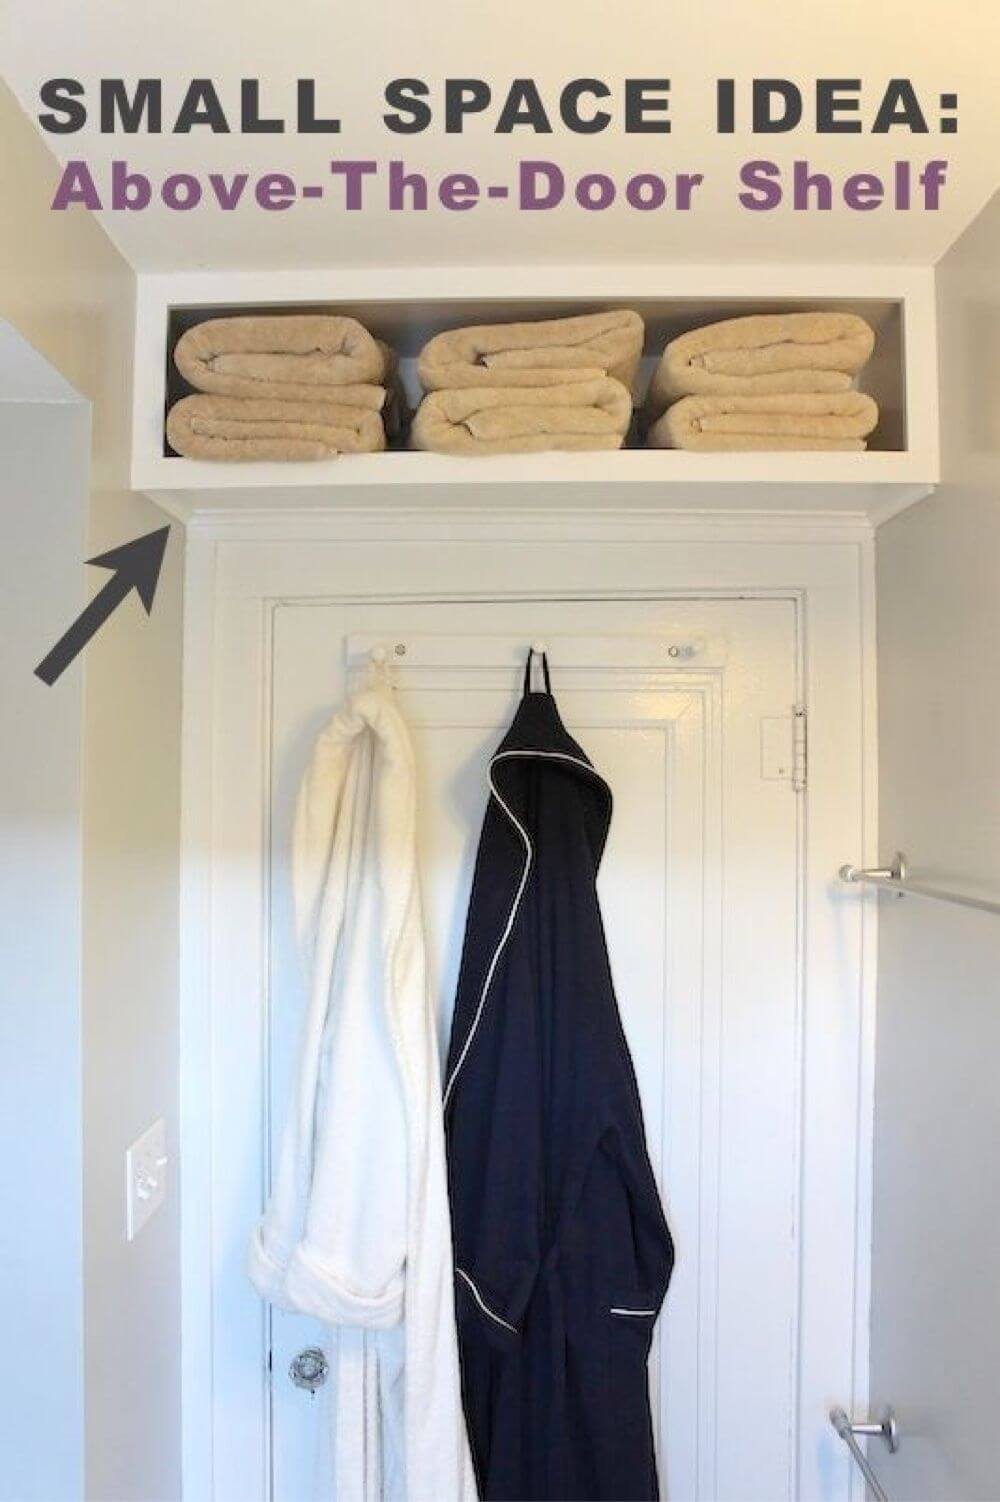 Over-the-Door Storage Shelf